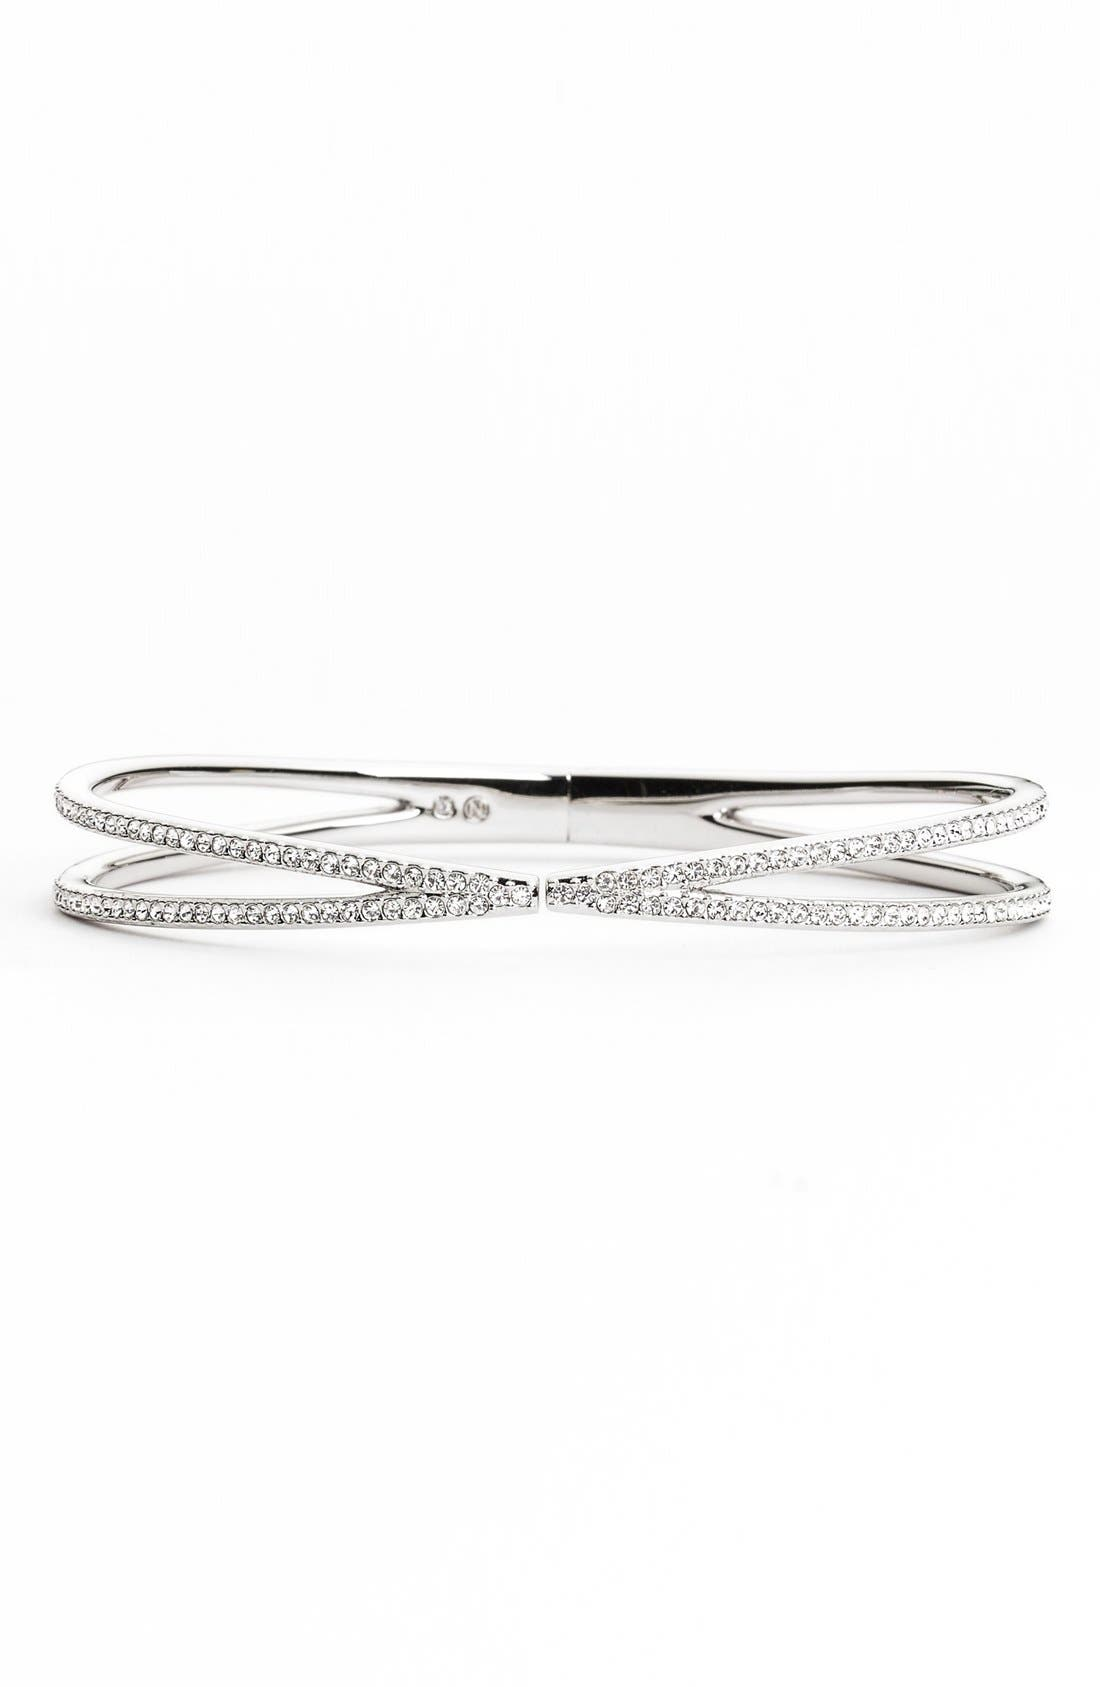 Alternate Image 1 Selected - Nadri Pavé Hinged Crossover Bracelet (Nordstrom Exclusive)